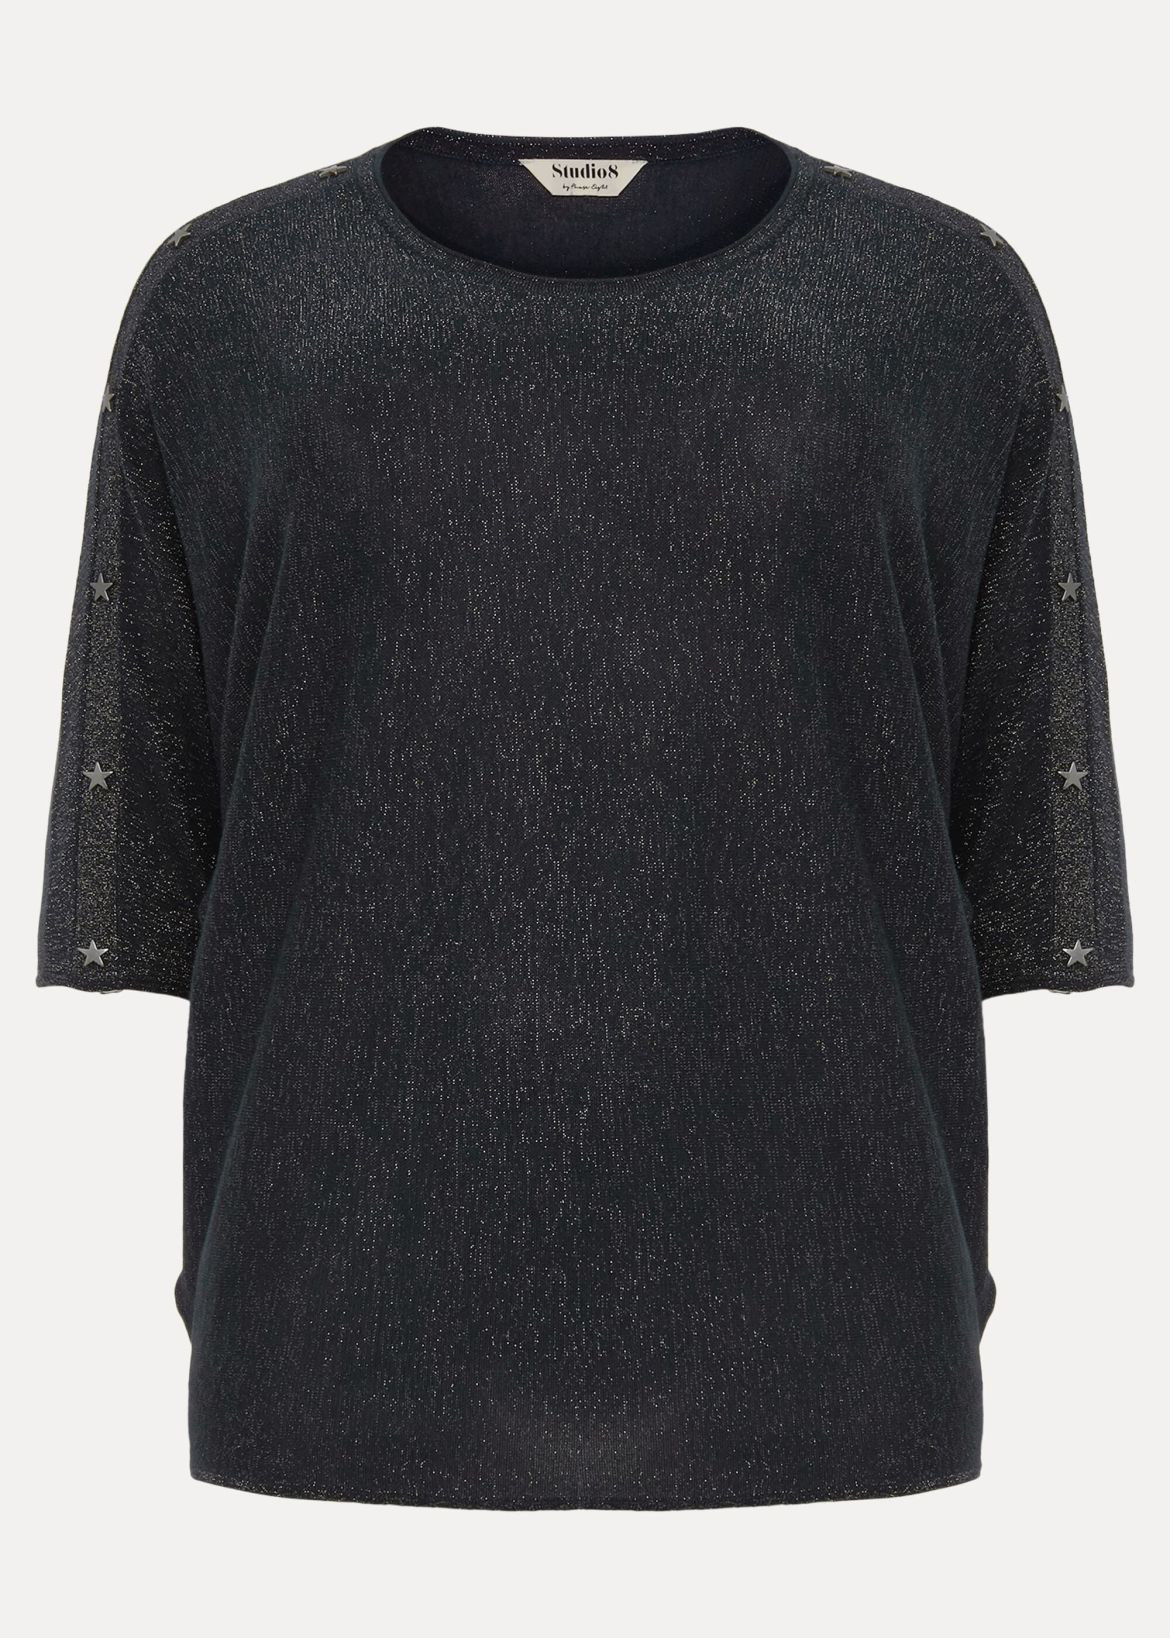 Abigale Star Shimmer Knit Top